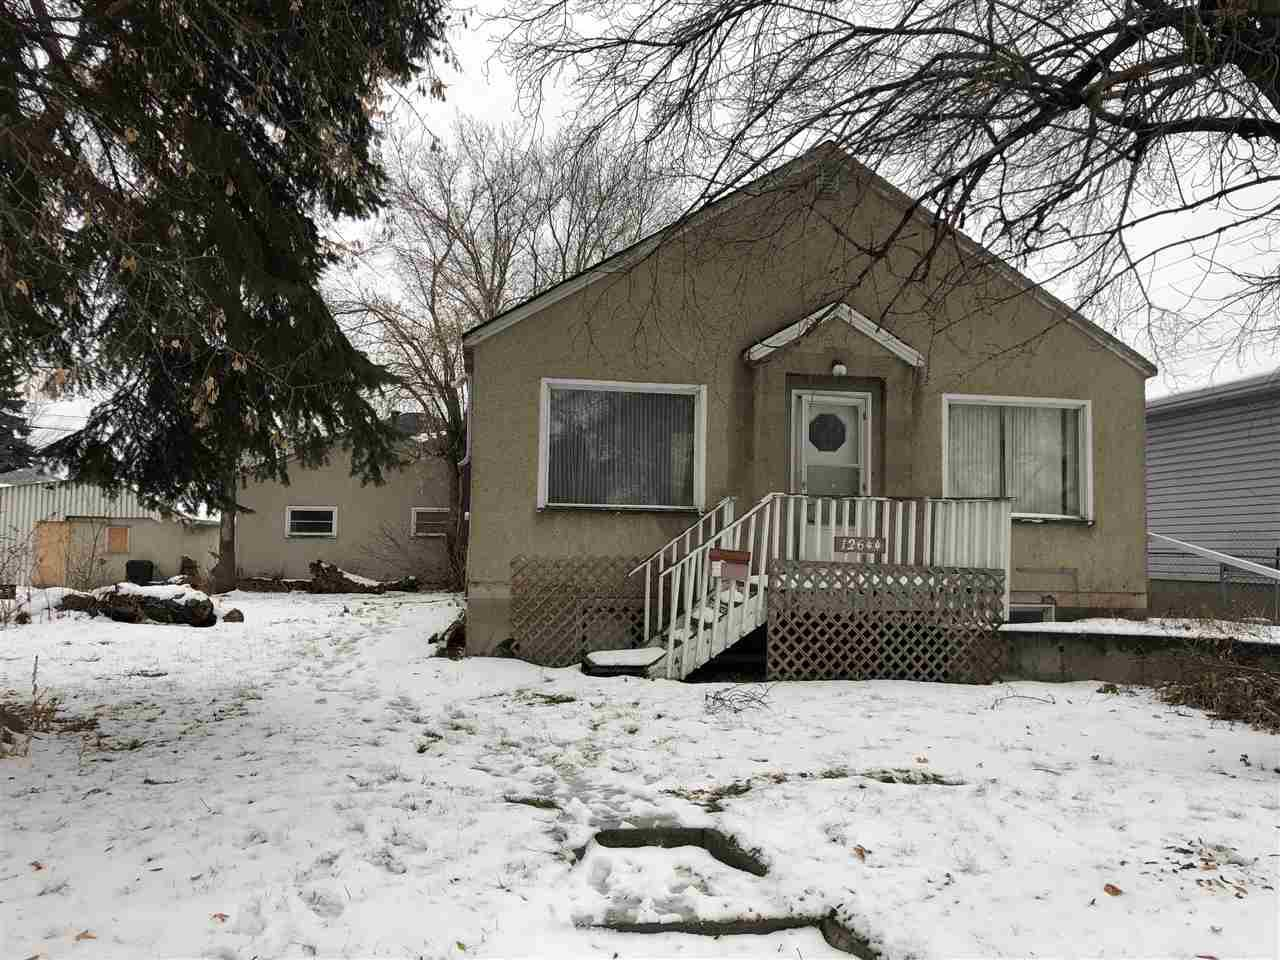 Main Photo: 12644 70 Street in Edmonton: Zone 02 House for sale : MLS®# E4179962